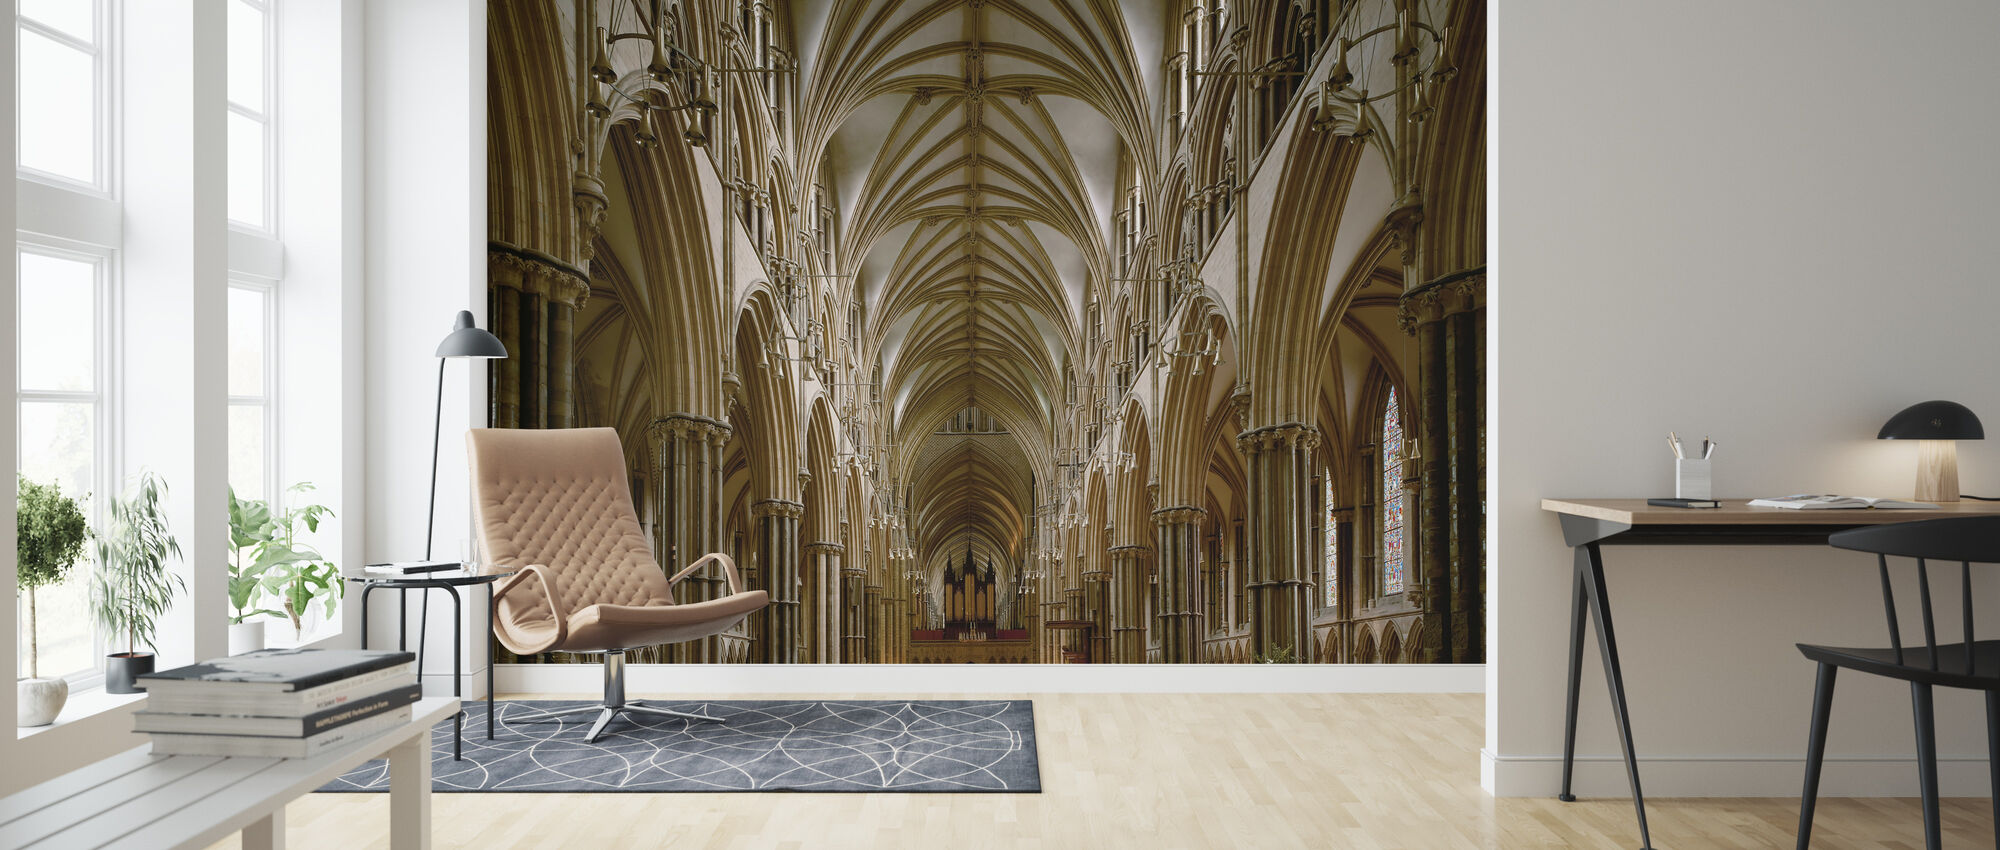 Center Nave of Lincoln Cathedral - Wallpaper - Living Room